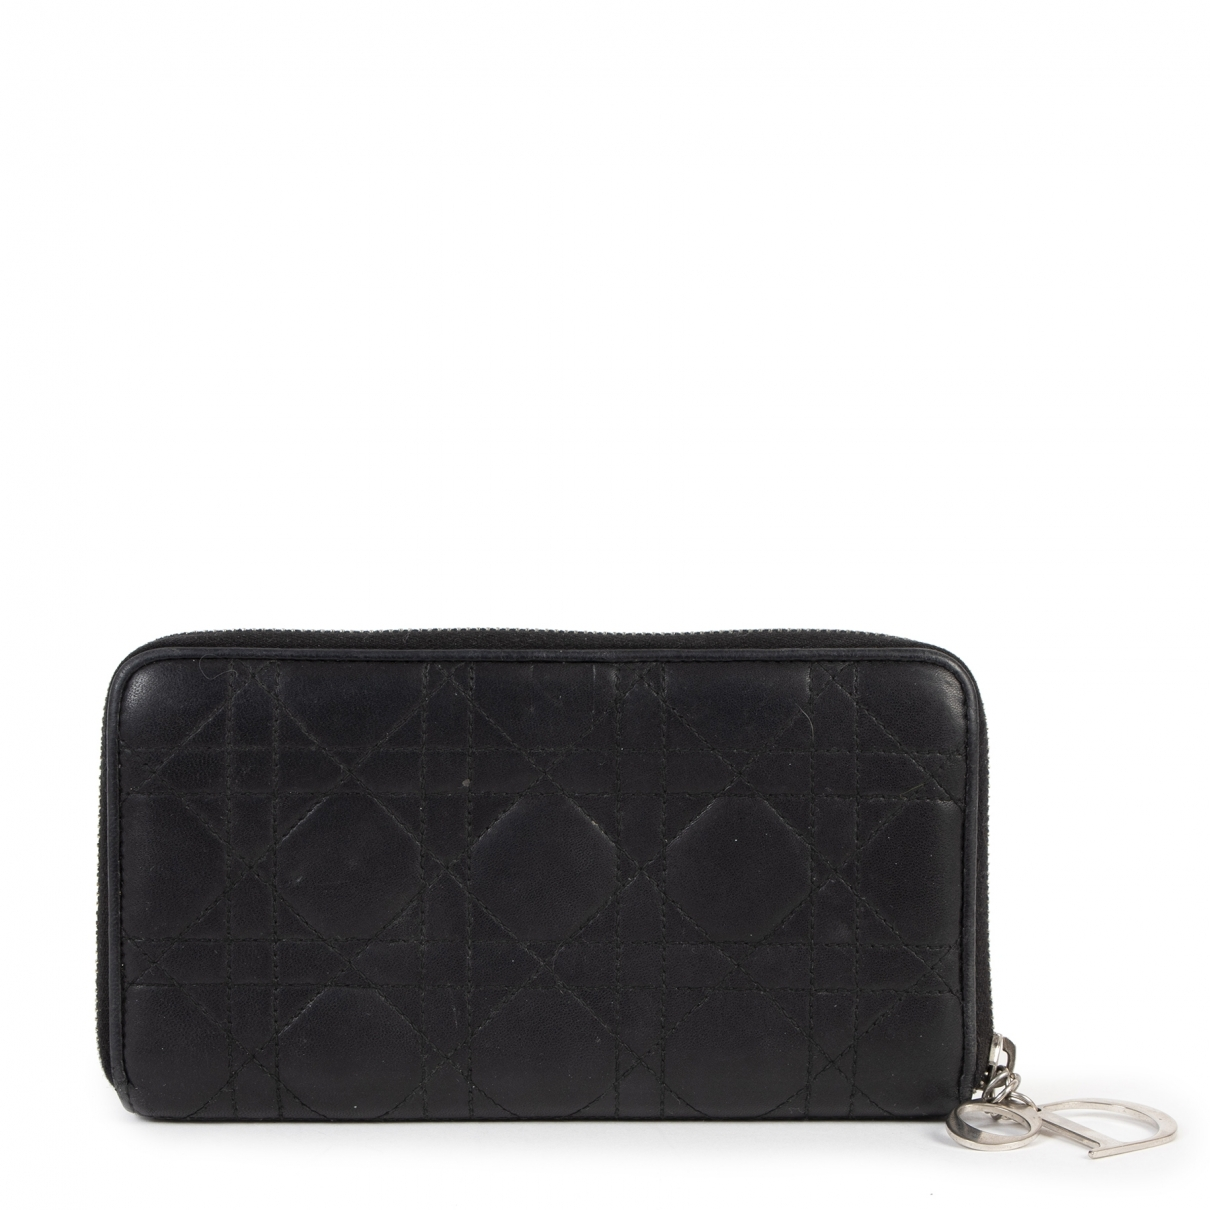 Buy Dior Dior Lady Dior Black Leather Wallet For Women N Dhgate Com